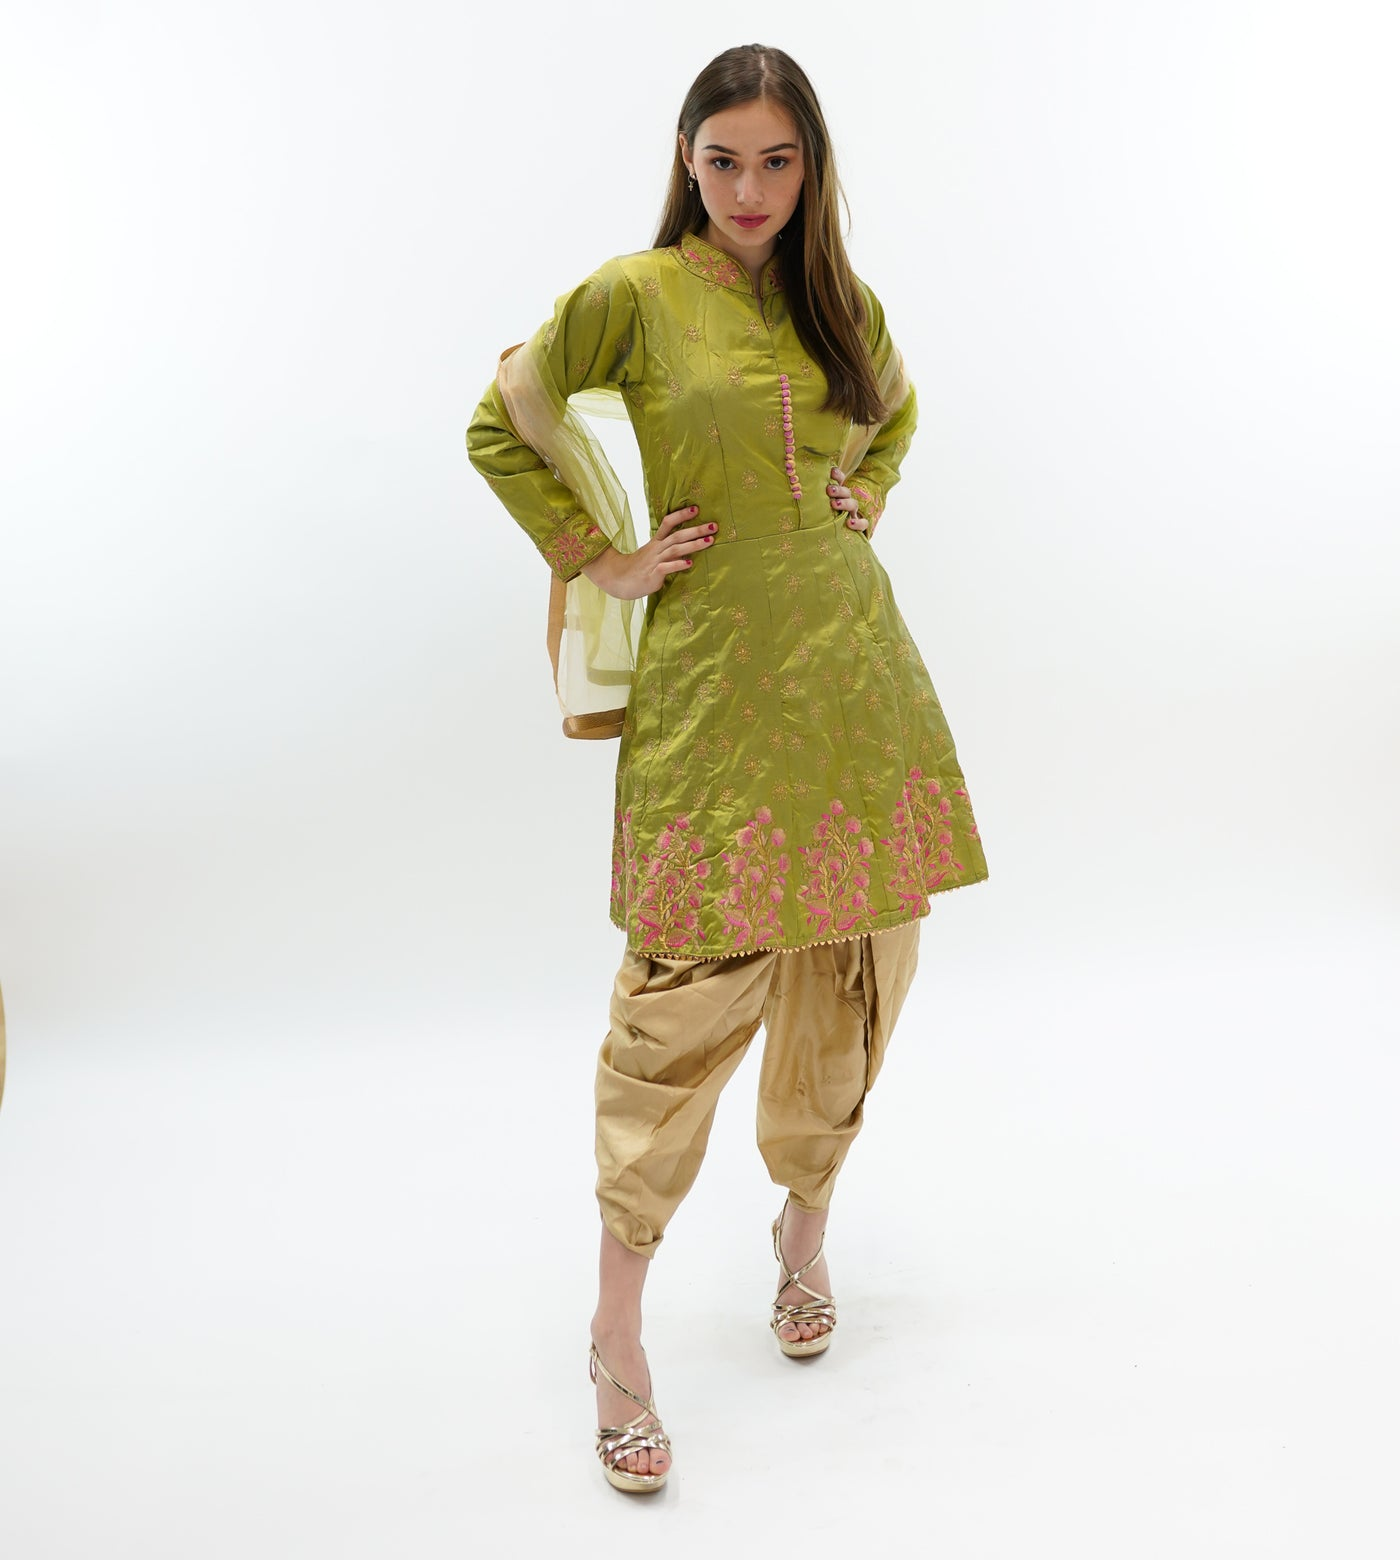 b4e6372a27 Silk Fancy Embroidered Olive Green Salwar Suit – Heritage India Fashions